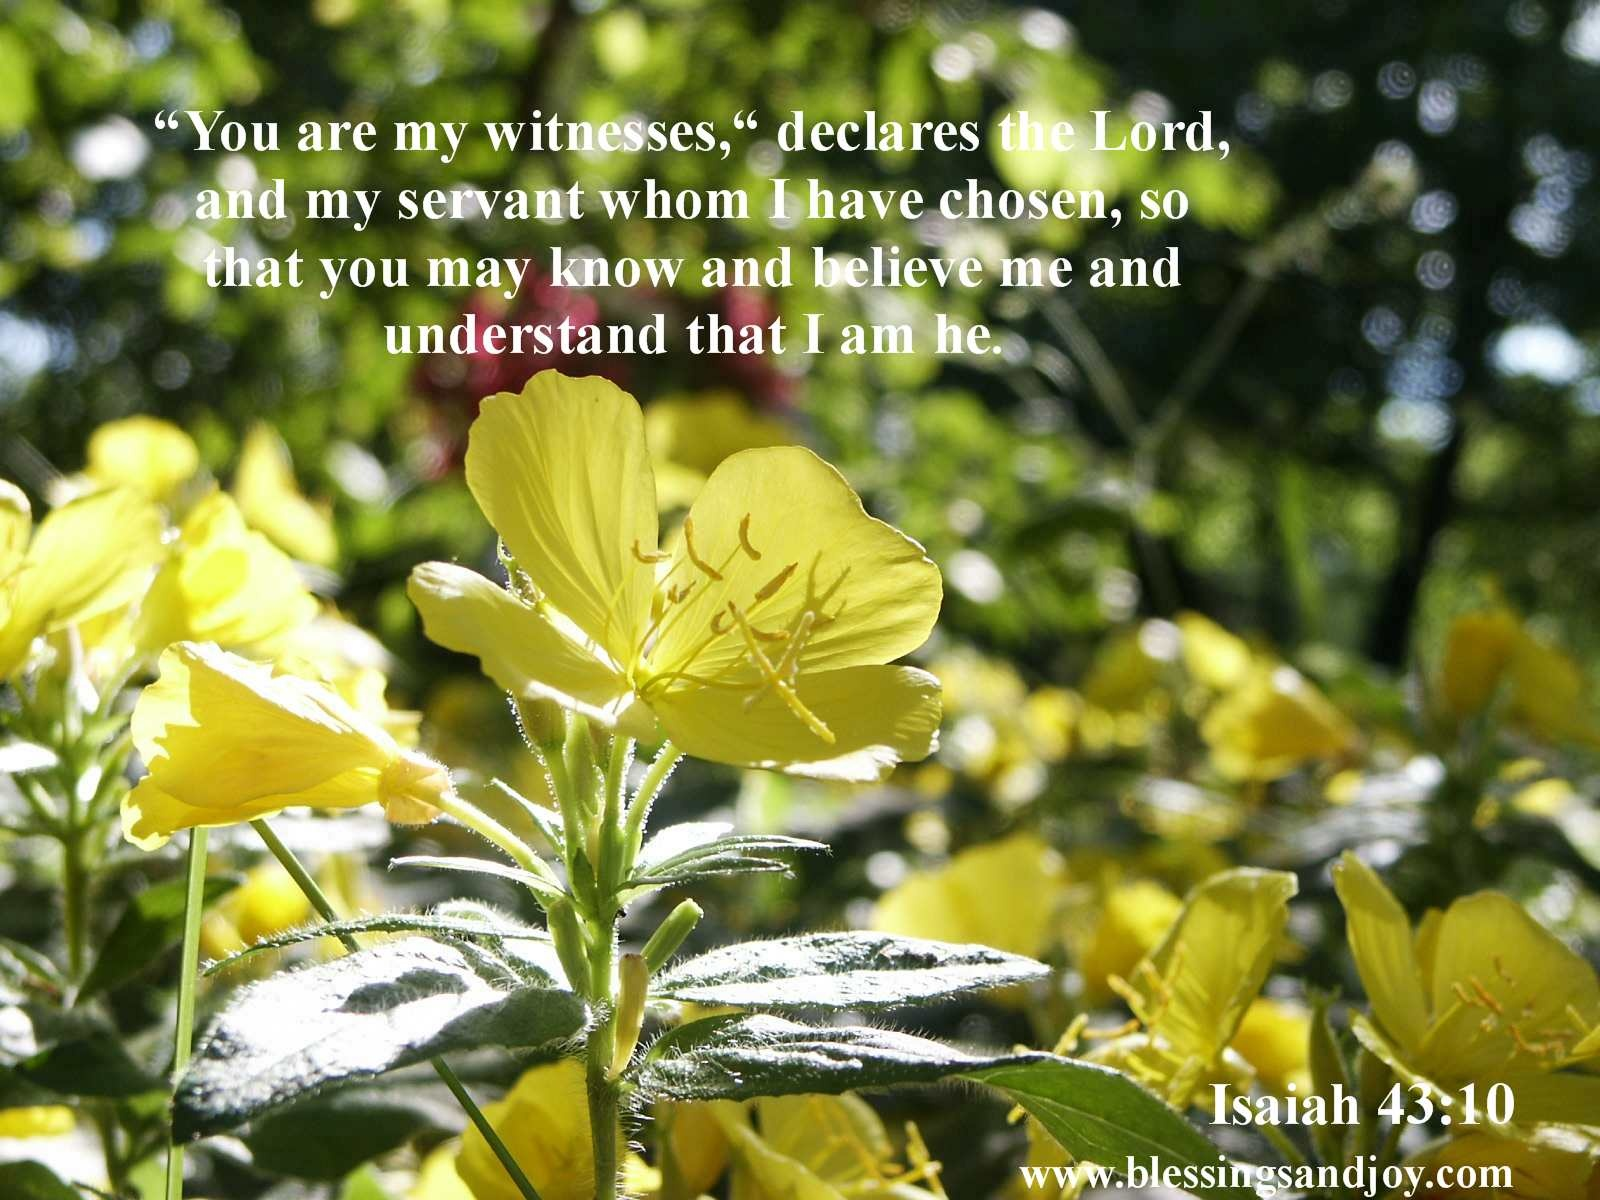 Sharing_your_faith_you_are_my_witness_Isaiah_43_10-23